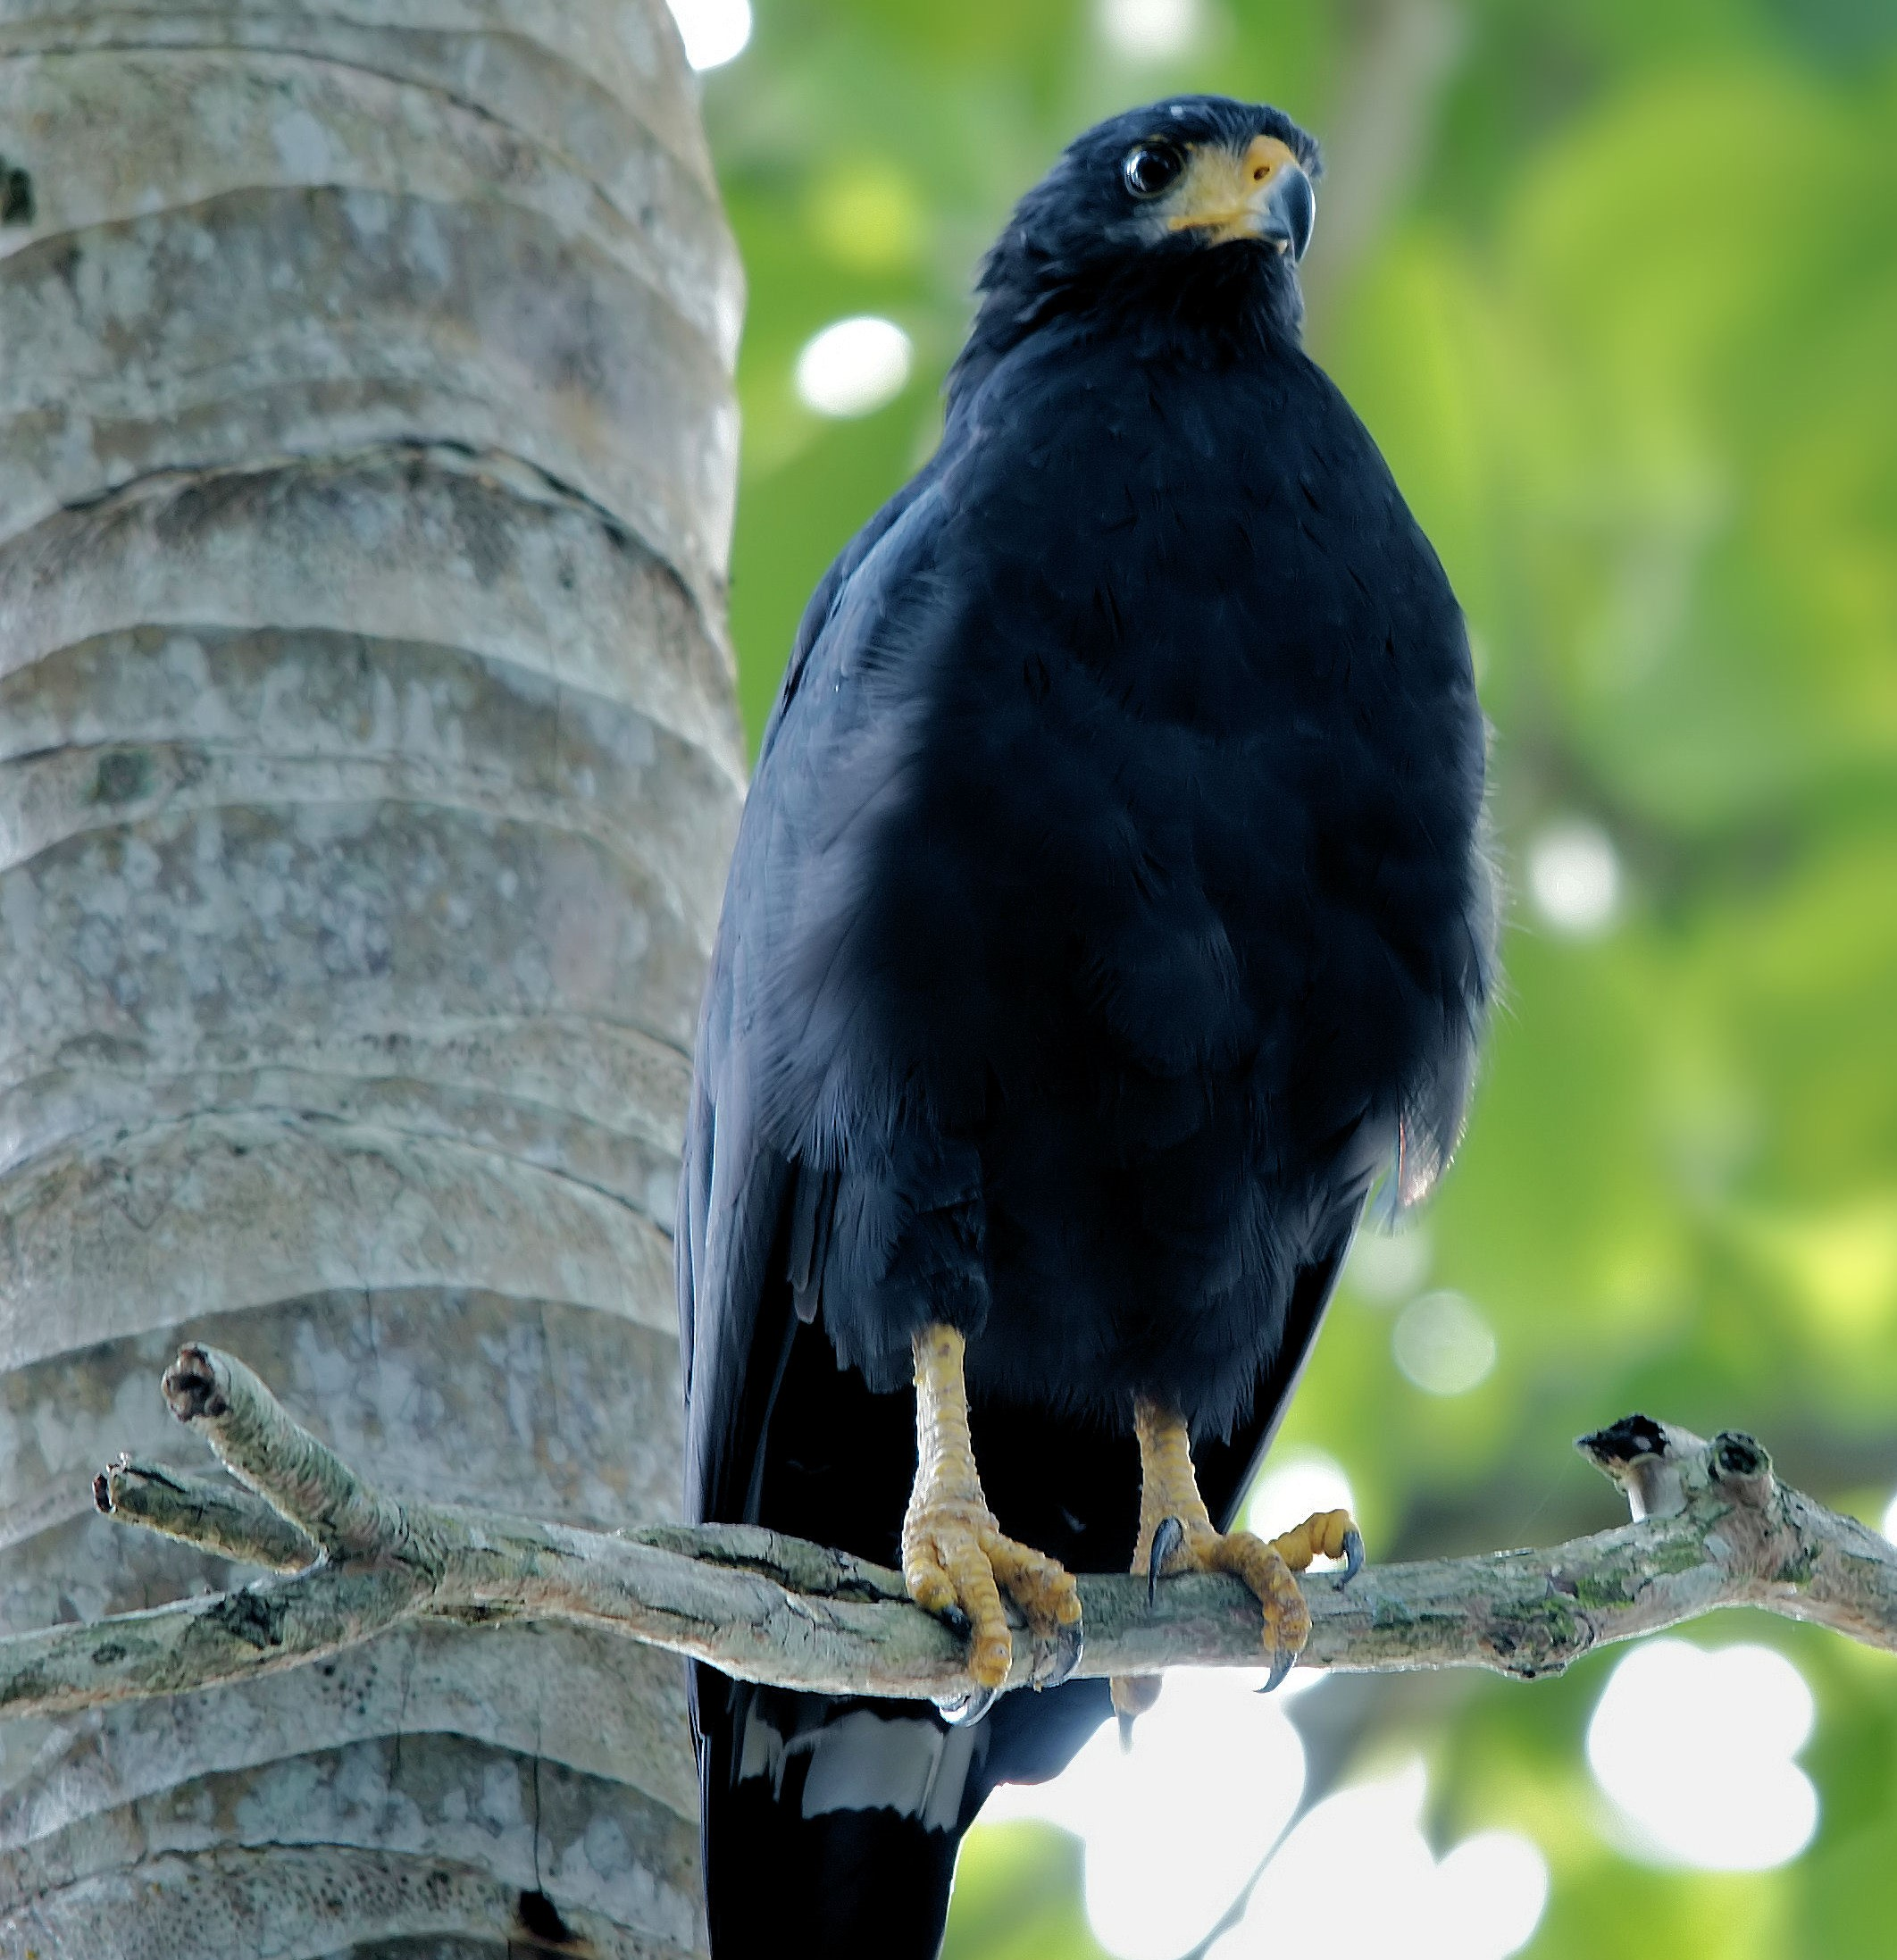 Facts About the Common Black Hawk